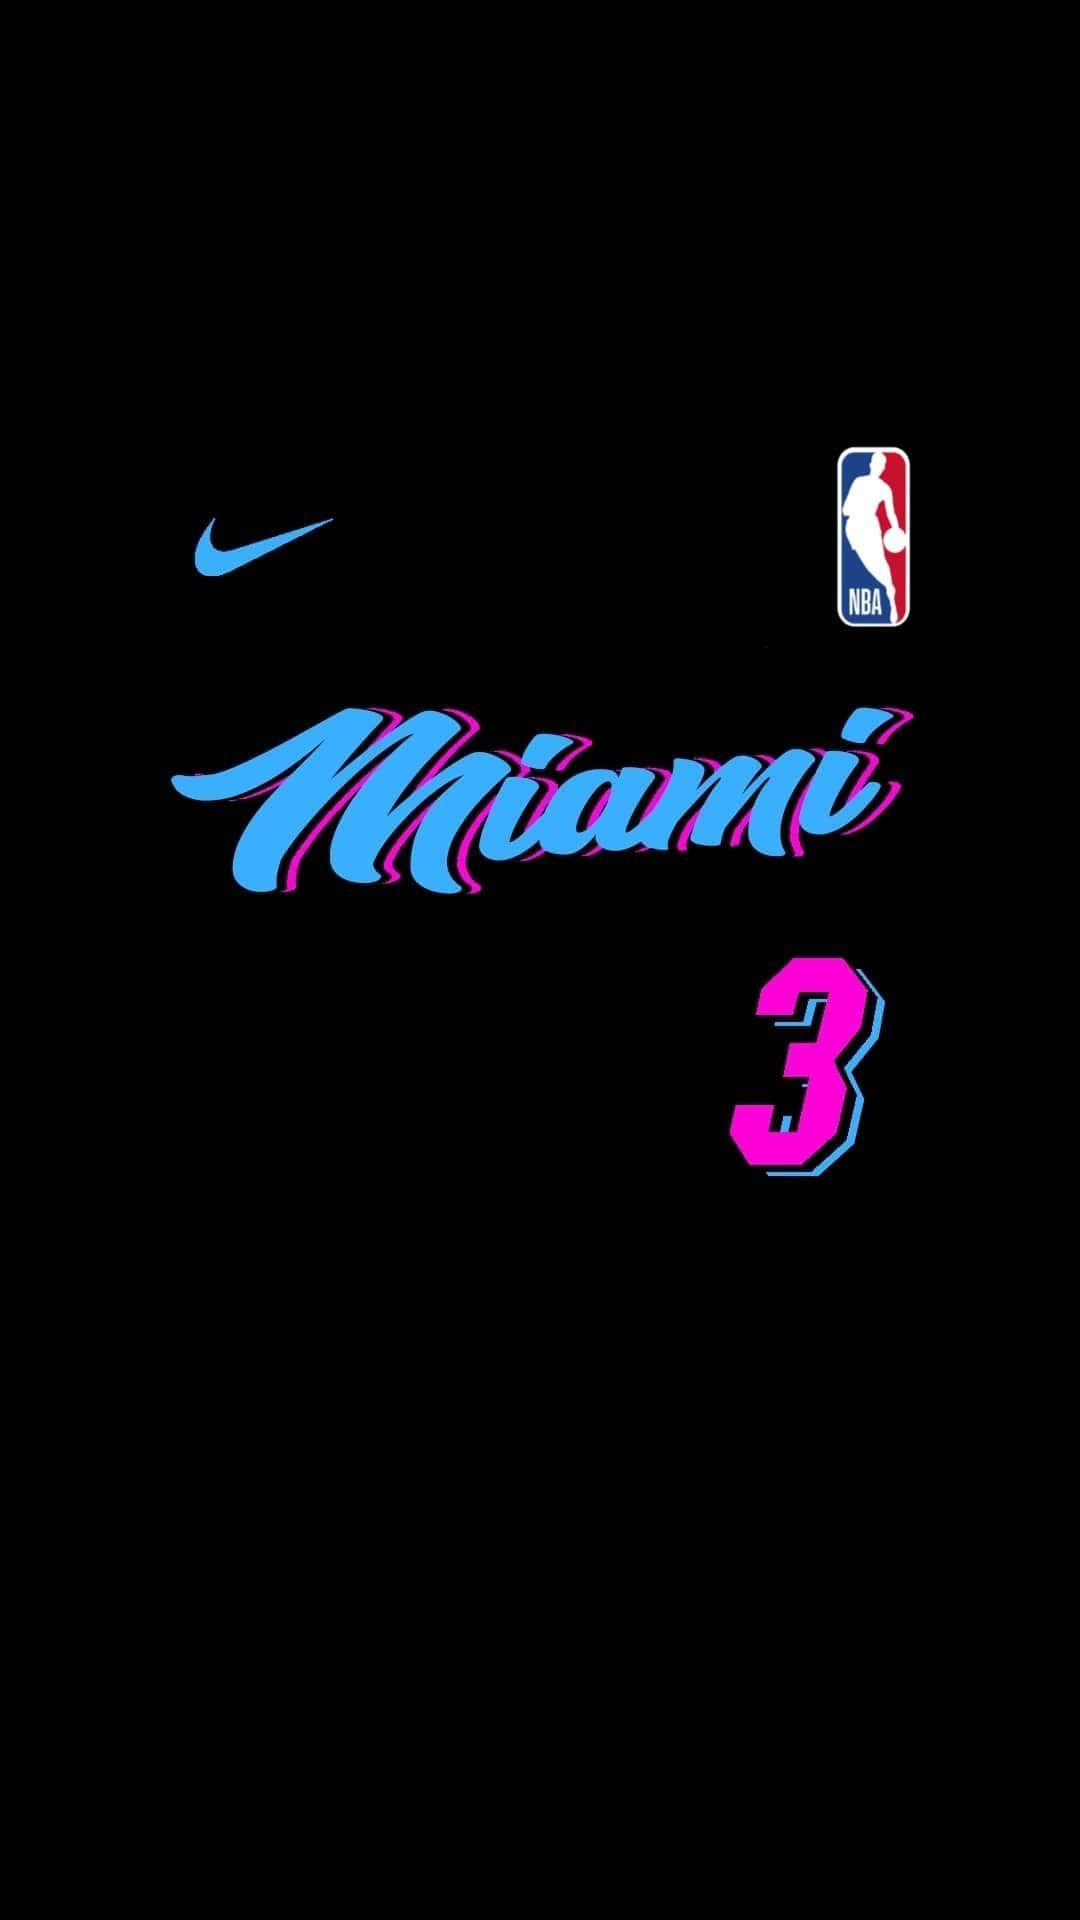 Nba Wallpaper Miami Heat